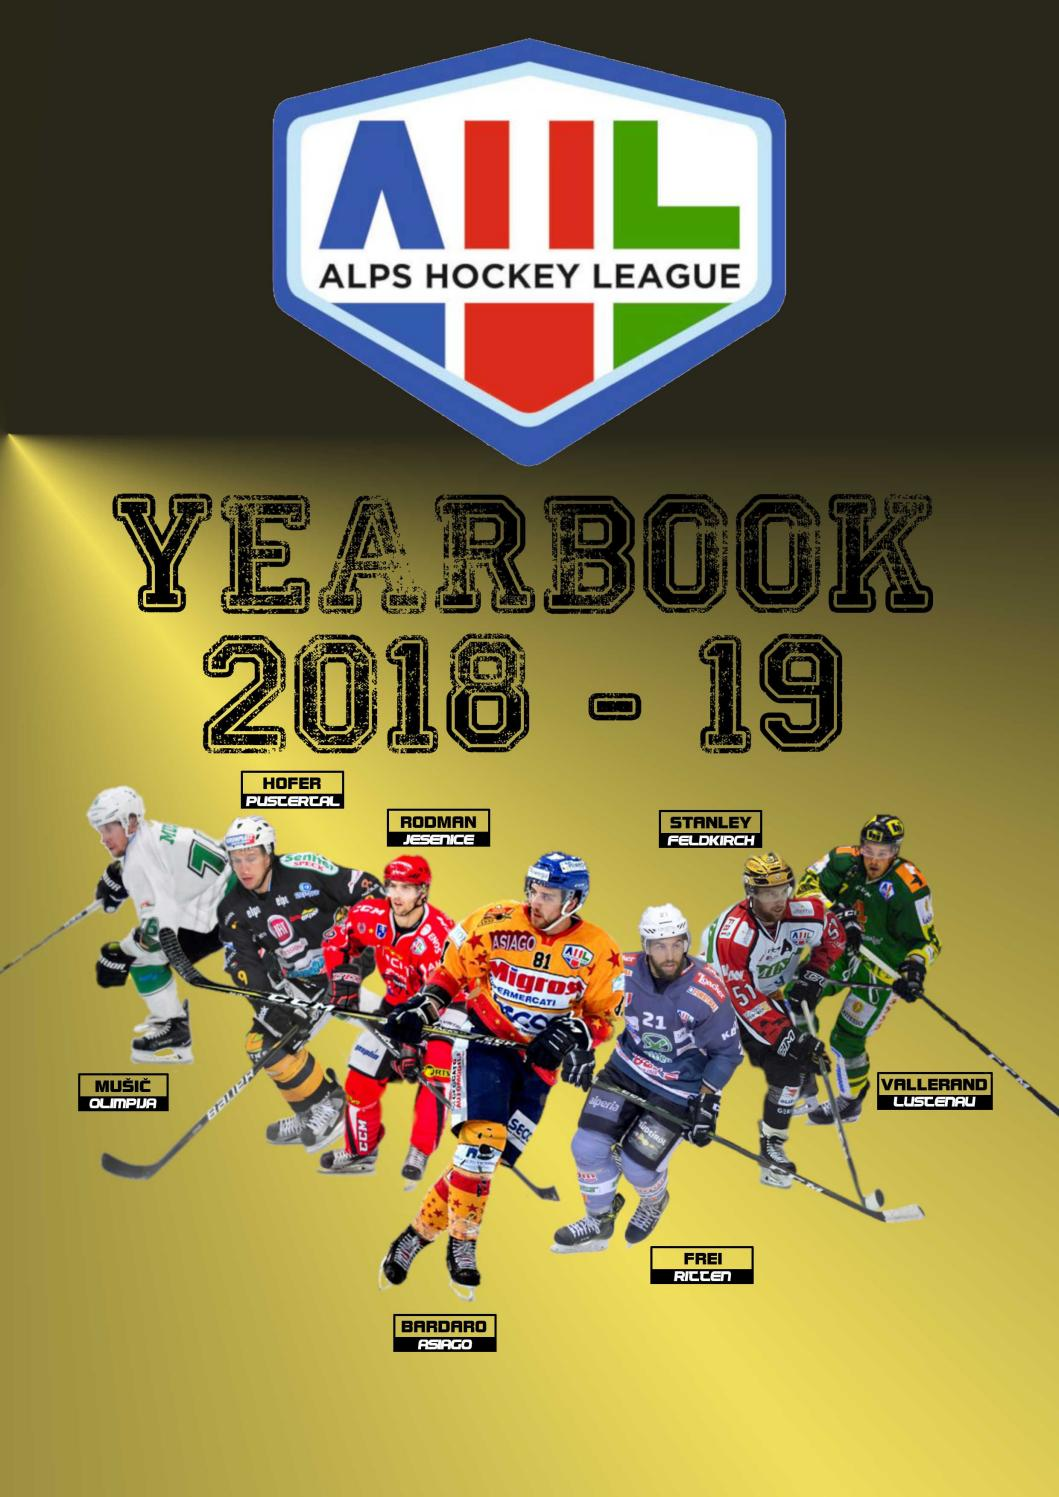 Alps Hockey League 2018/19 Yearbook by trapeznik - issuu